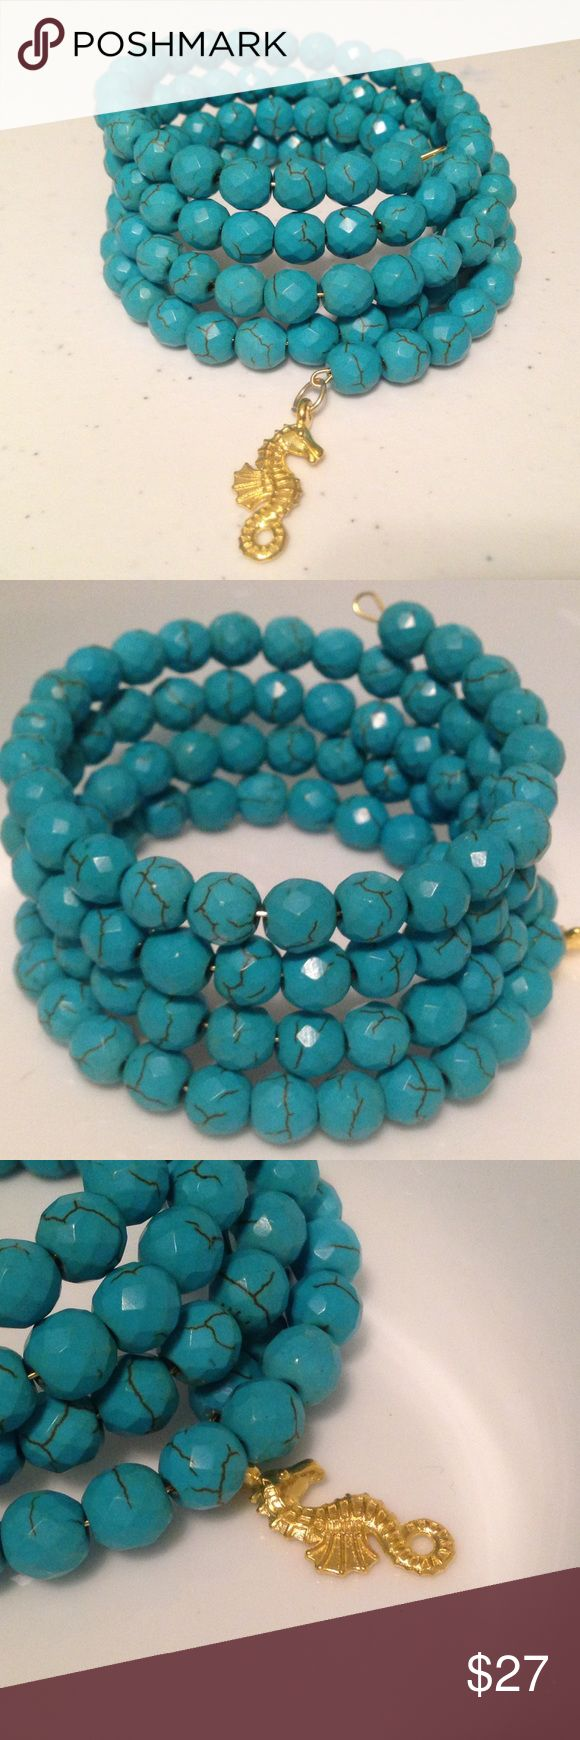 4 Strand Turquoise Wrap Bracelet Handmade by Colby Designs. Features turquoise beads and a seahorse charm. If you are interested in a different charm let me know (before u buy!) and I'll check my inventory 😃 Handmade Jewelry Bracelets #handmadejewelrydesigns